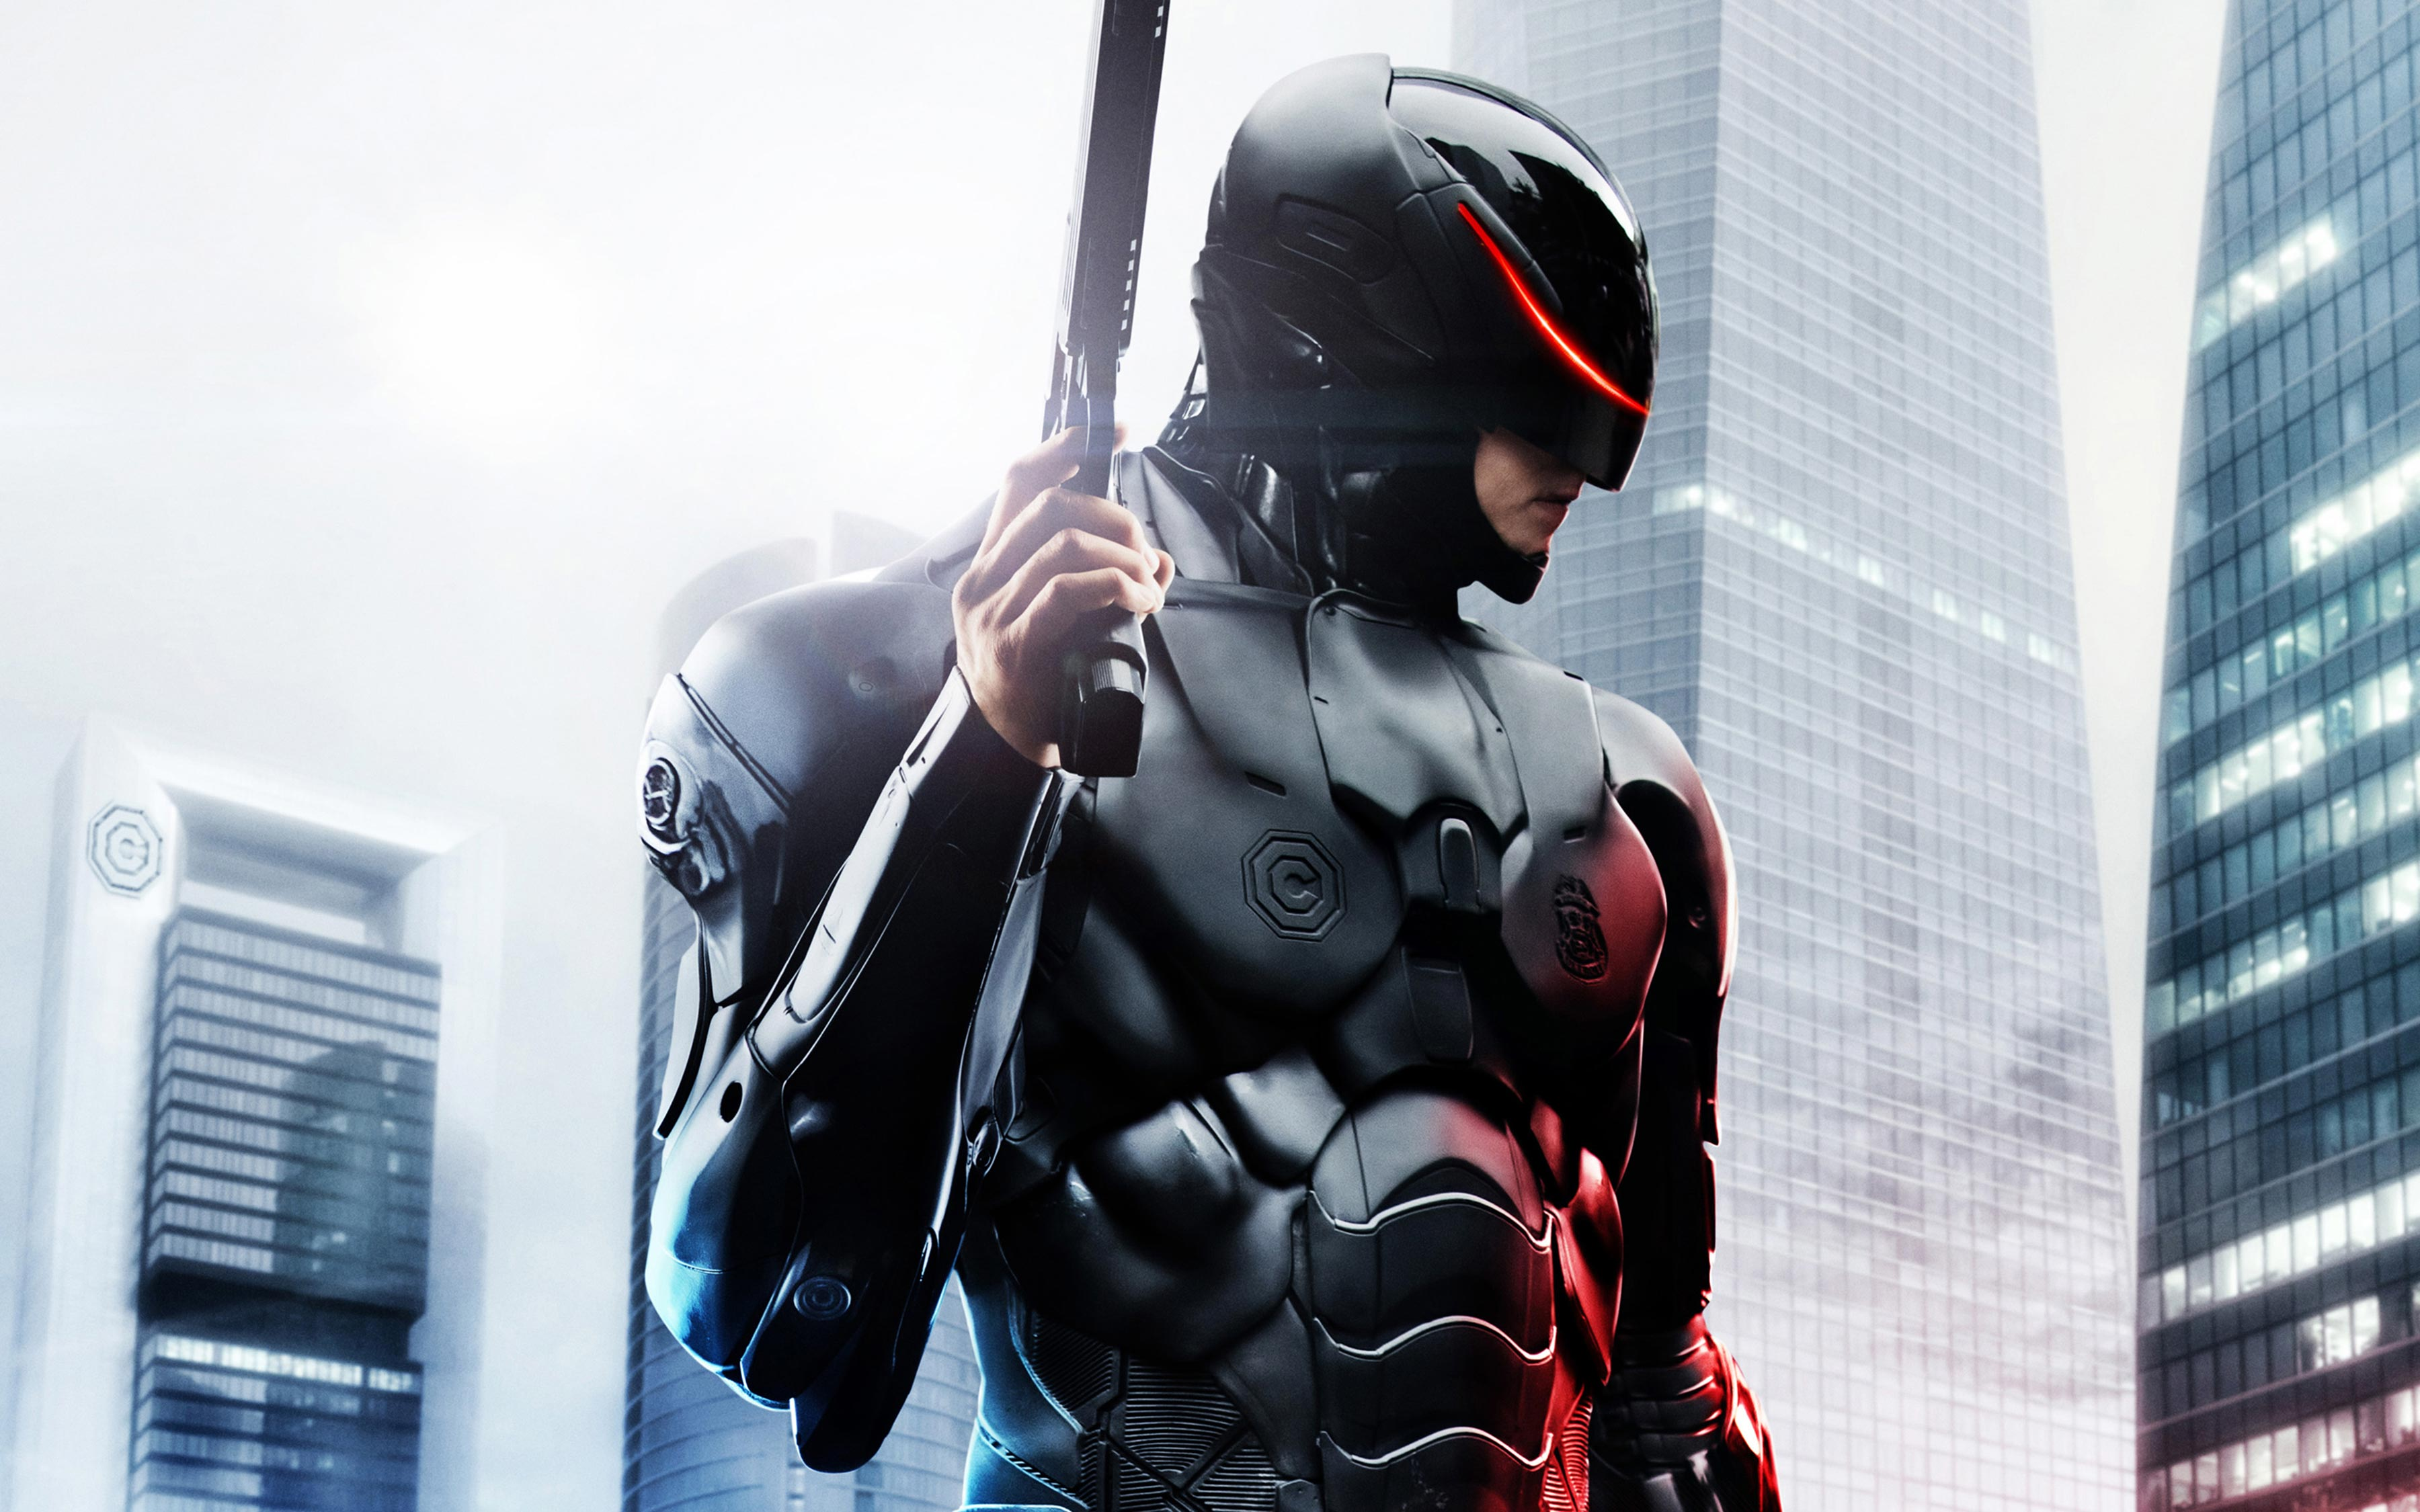 Robocop 2014 Movie Wallpapers [HD] Facebook Timeline Covers 3600x2250